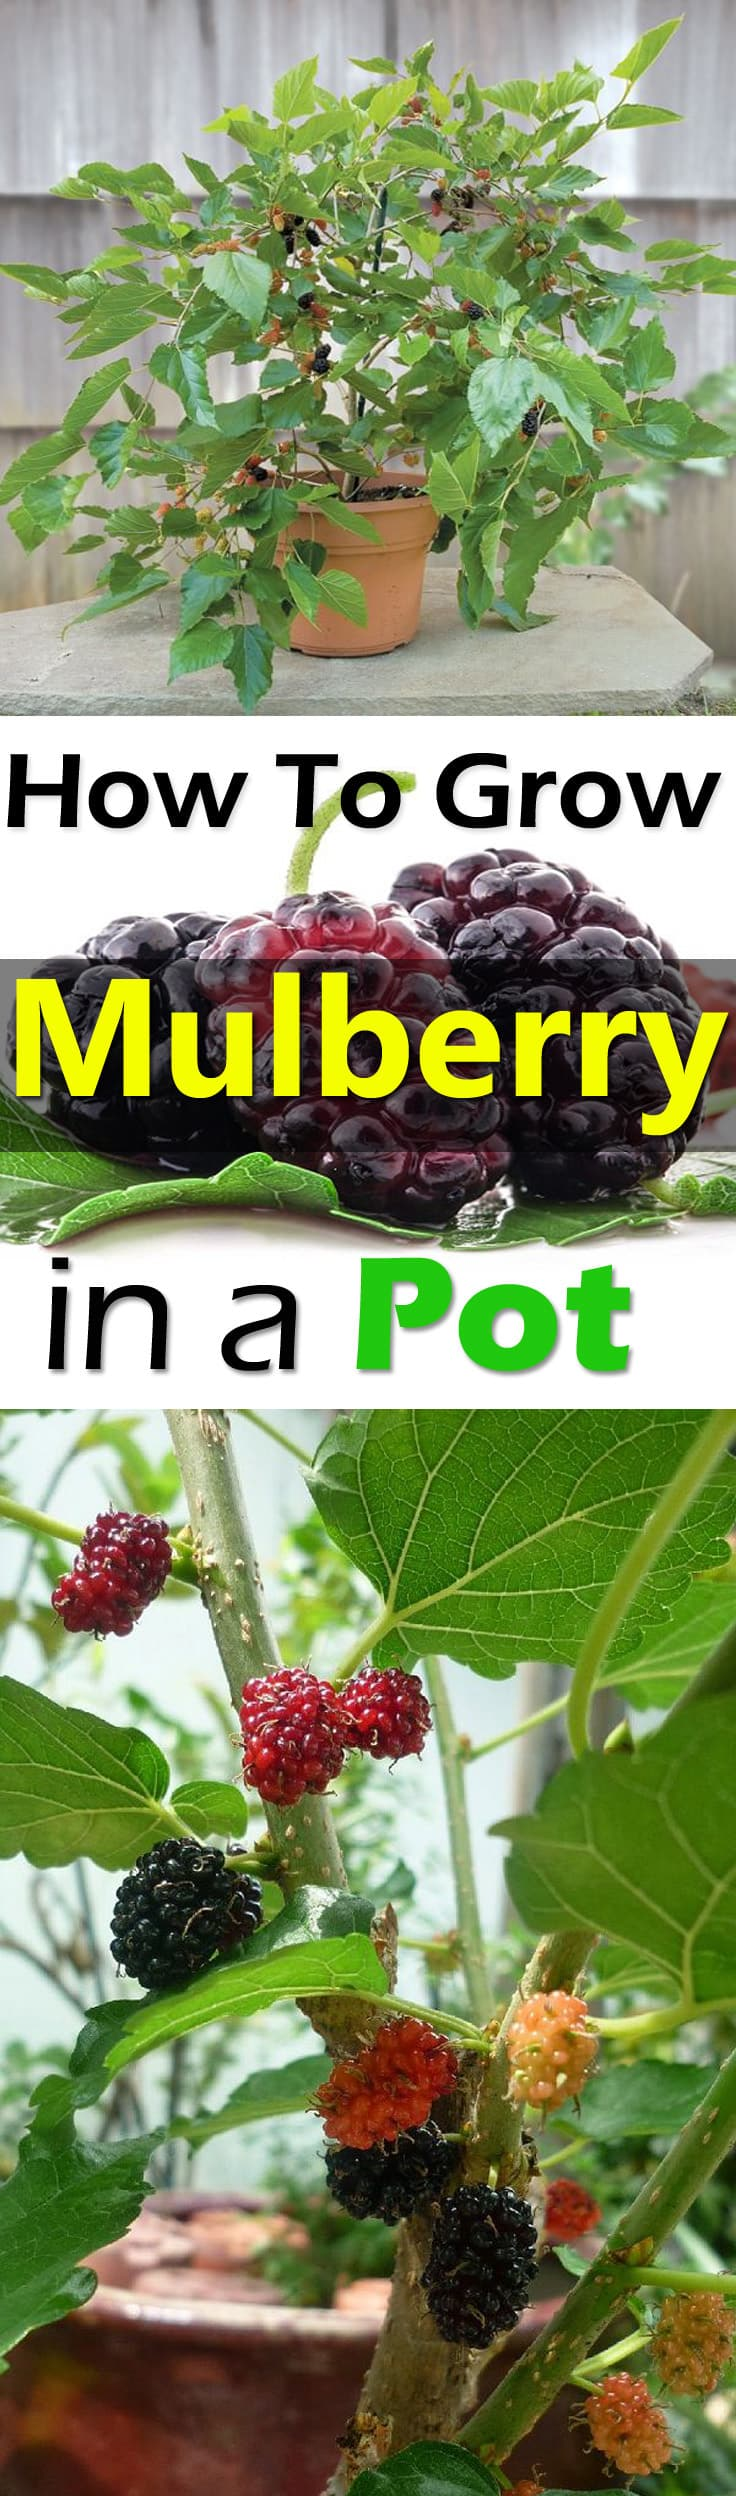 Growing Mulberry In Containers How To Grow Mulberry Tree In A Pot